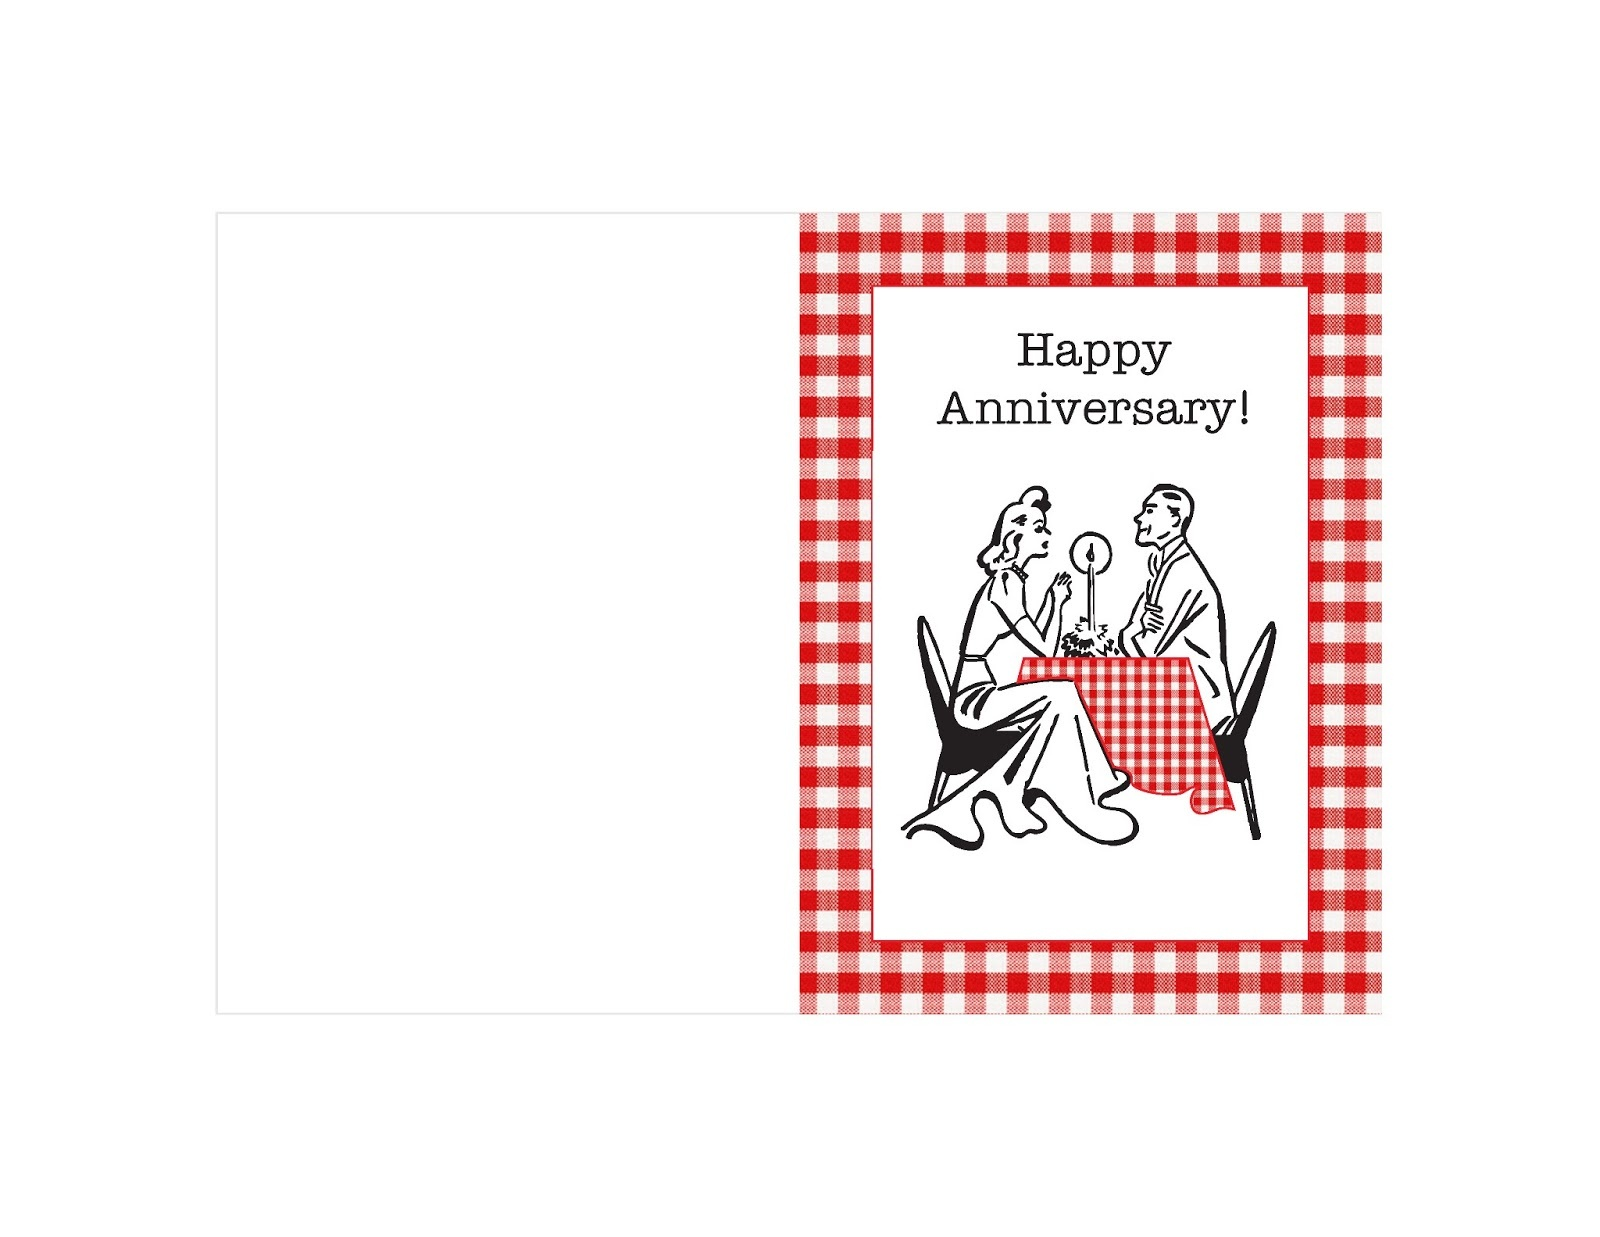 30 Free Printable Anniversary Cards   Kittybabylove - Printable Cards Free Anniversary